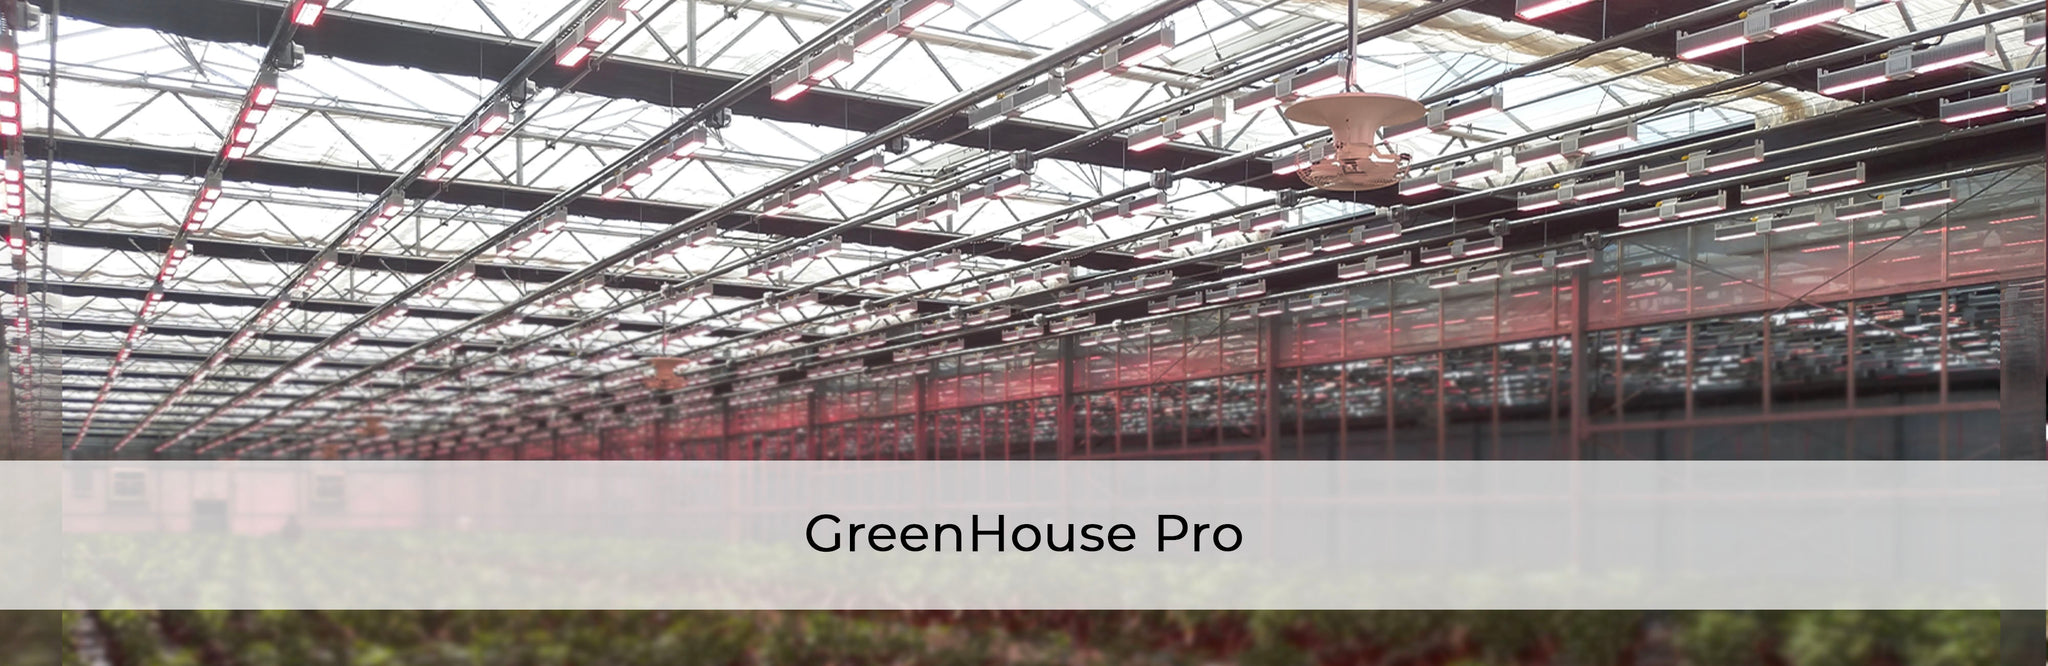 GreenHouse Lighting | California LightWorks